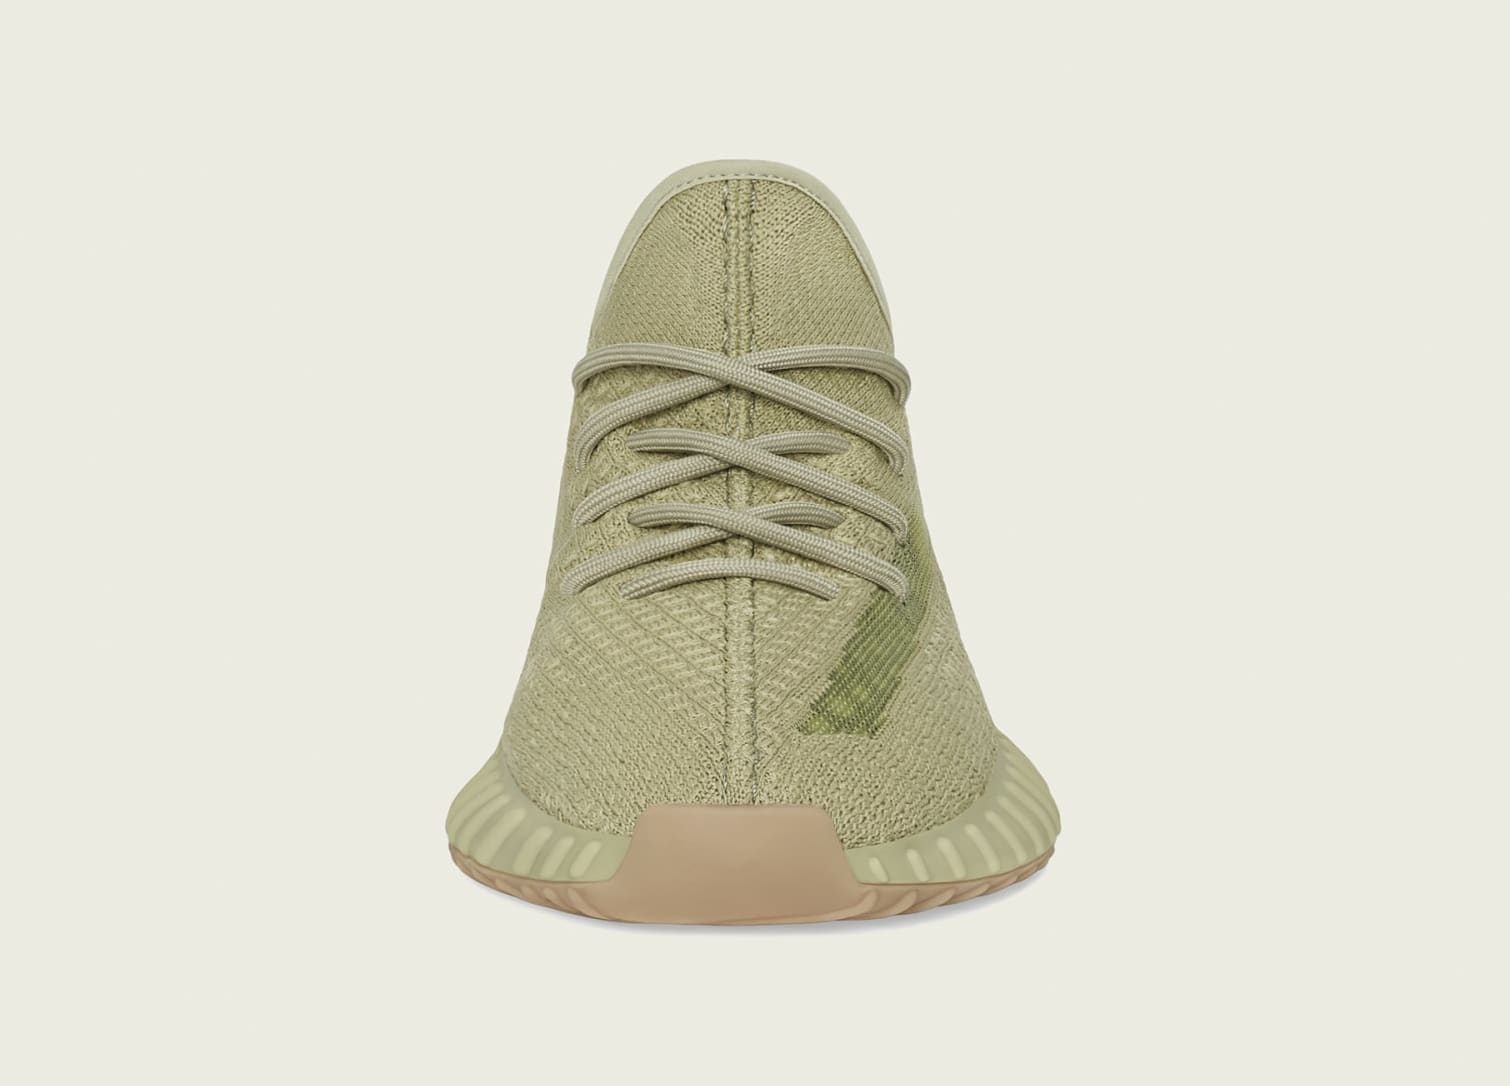 Adidas Yeezy Boost 350 V2 'Sulfur' FY5346 Front